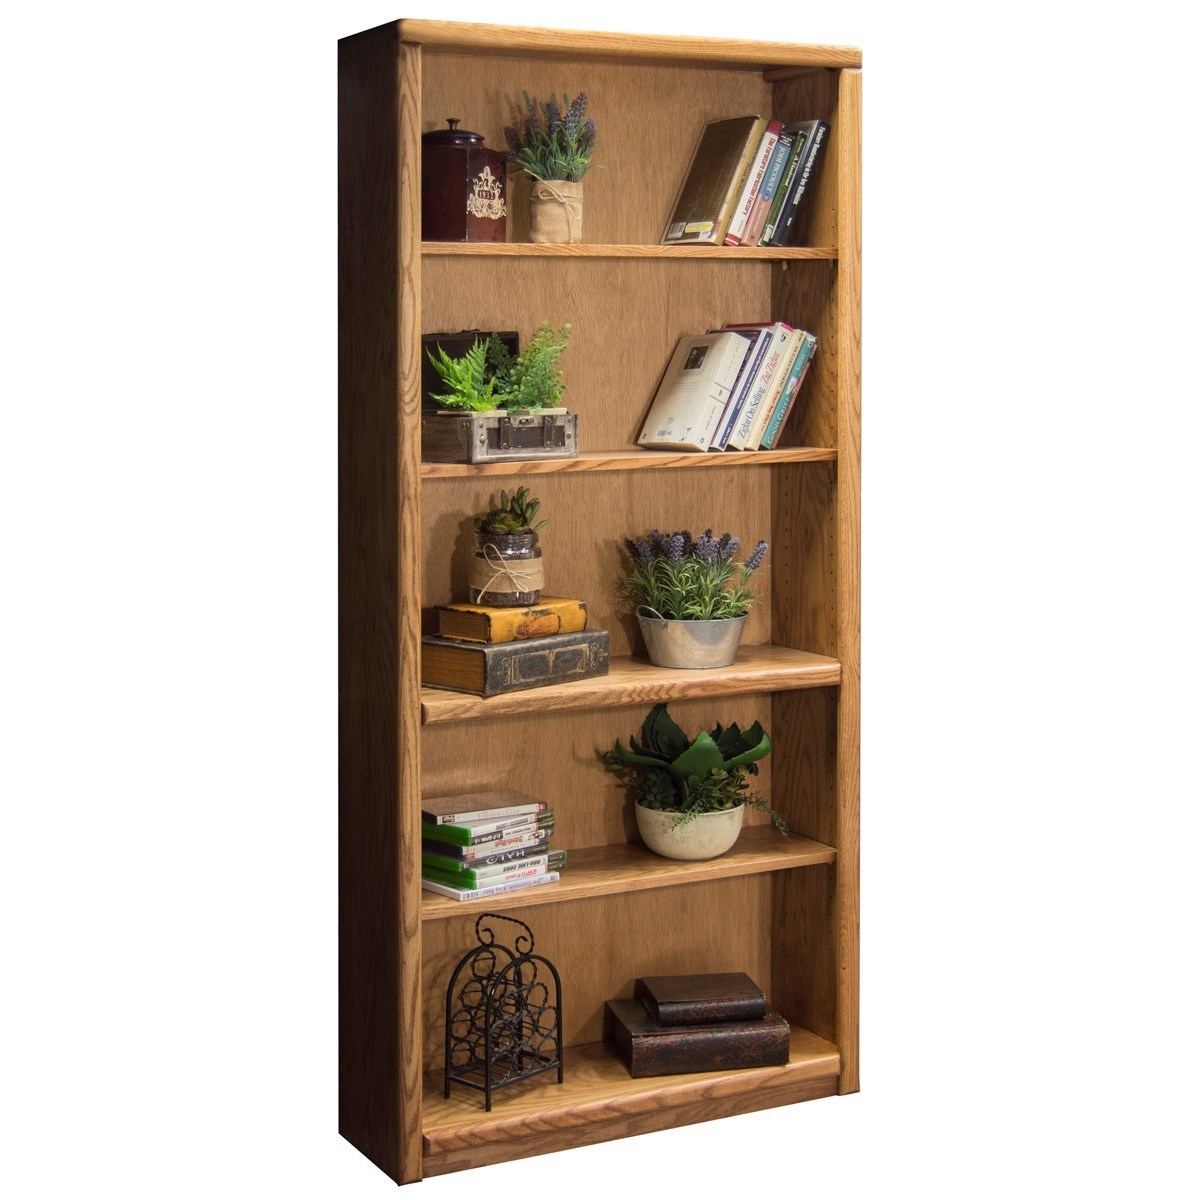 Legends Furniture Contemporary - Value Groups Bookcase With 1 Fixed & 3 adj. Shelves - Item Number: CC6672